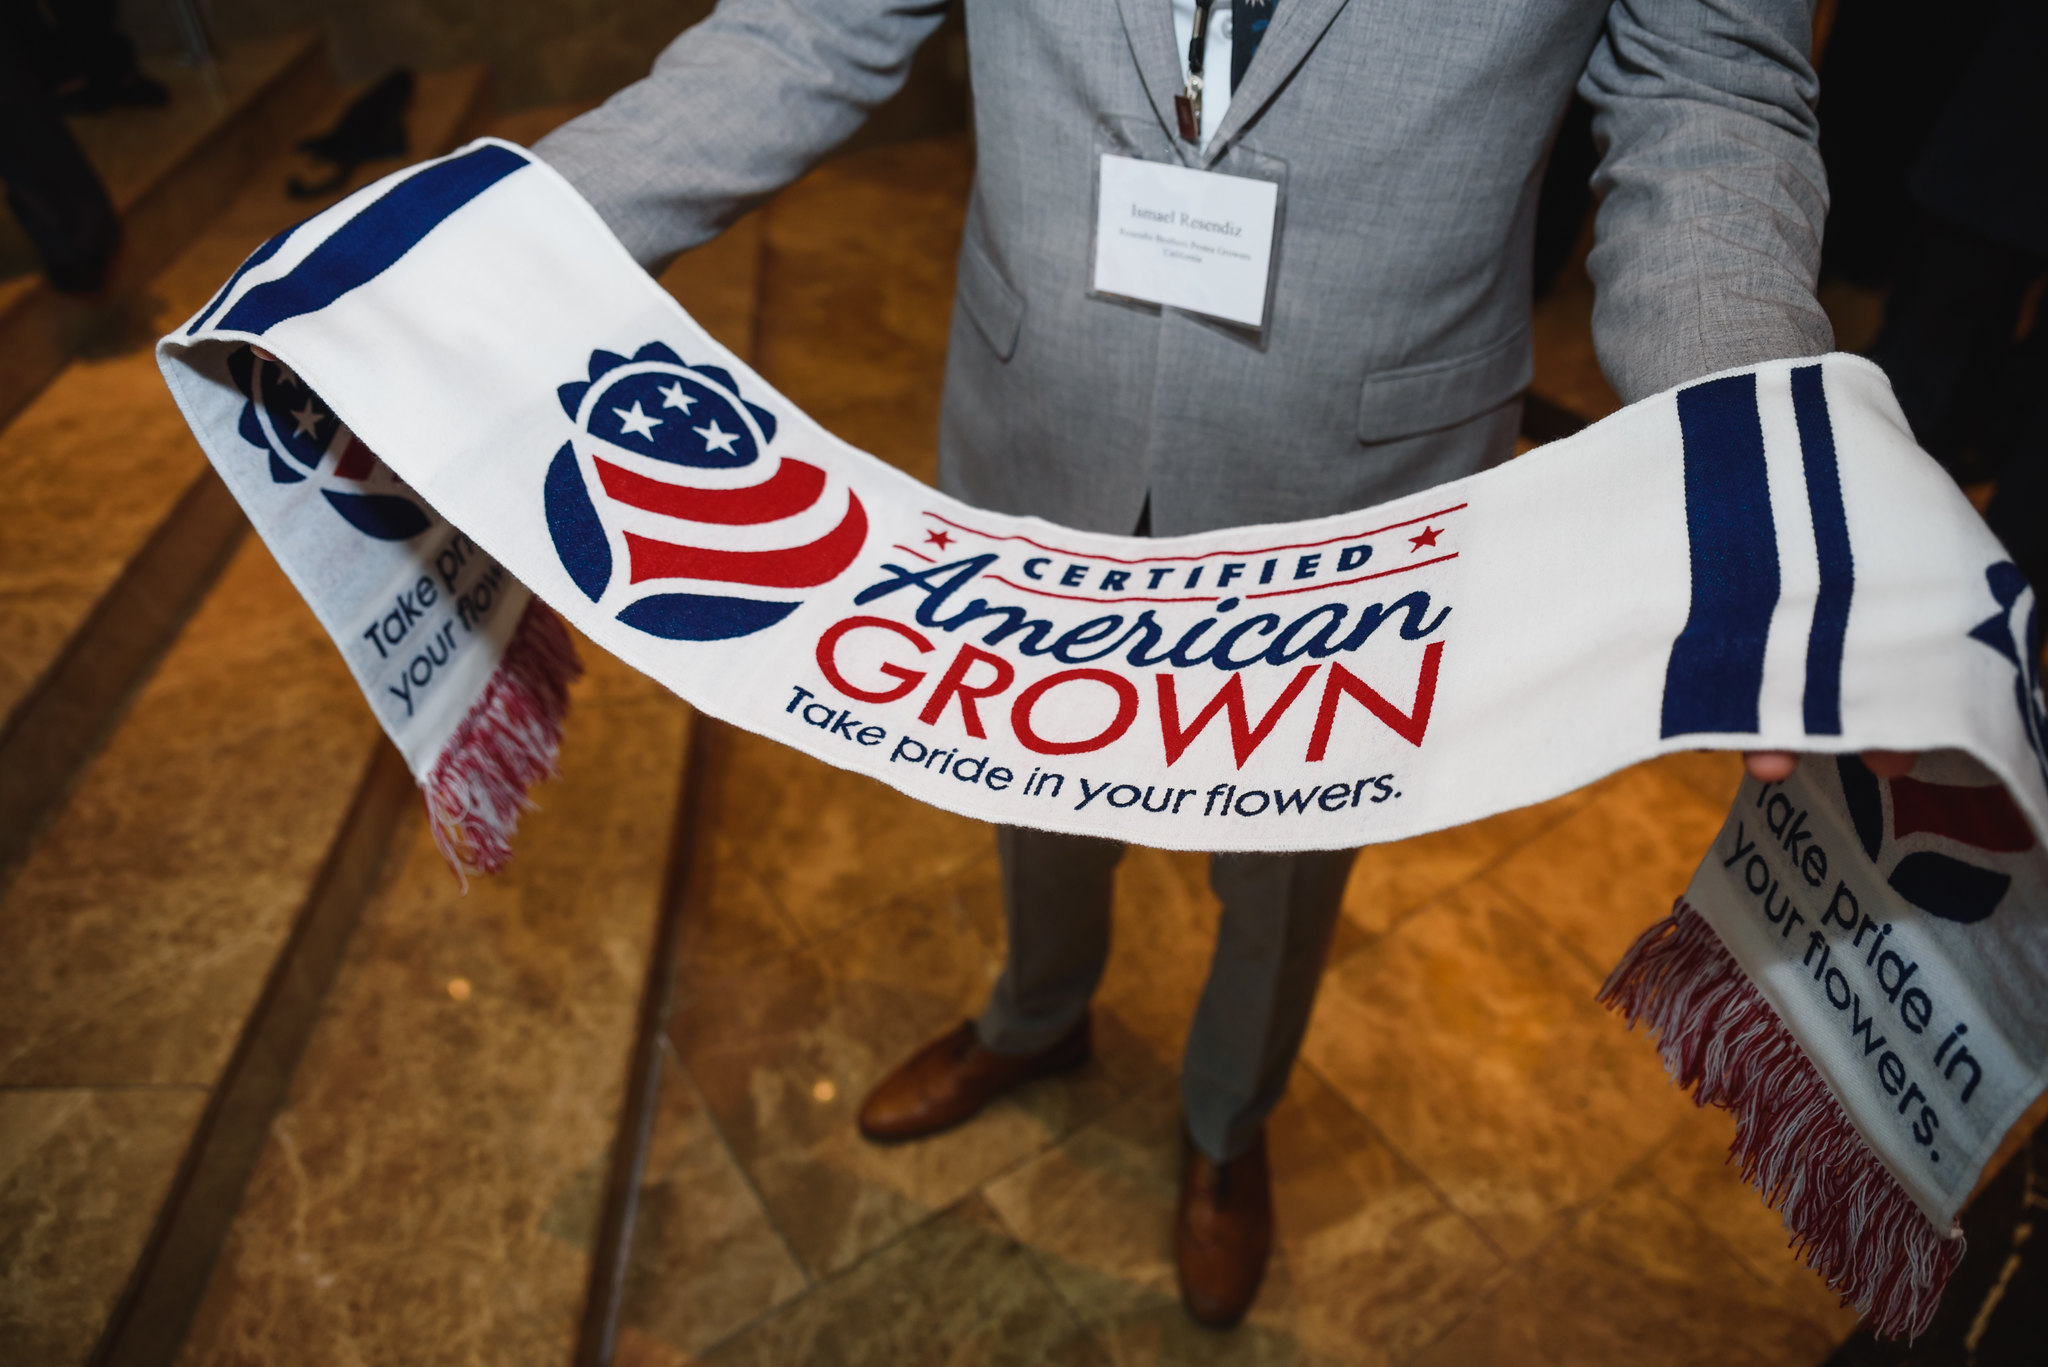 Nondescript male holding a scarf with the Certified American Grown logo.